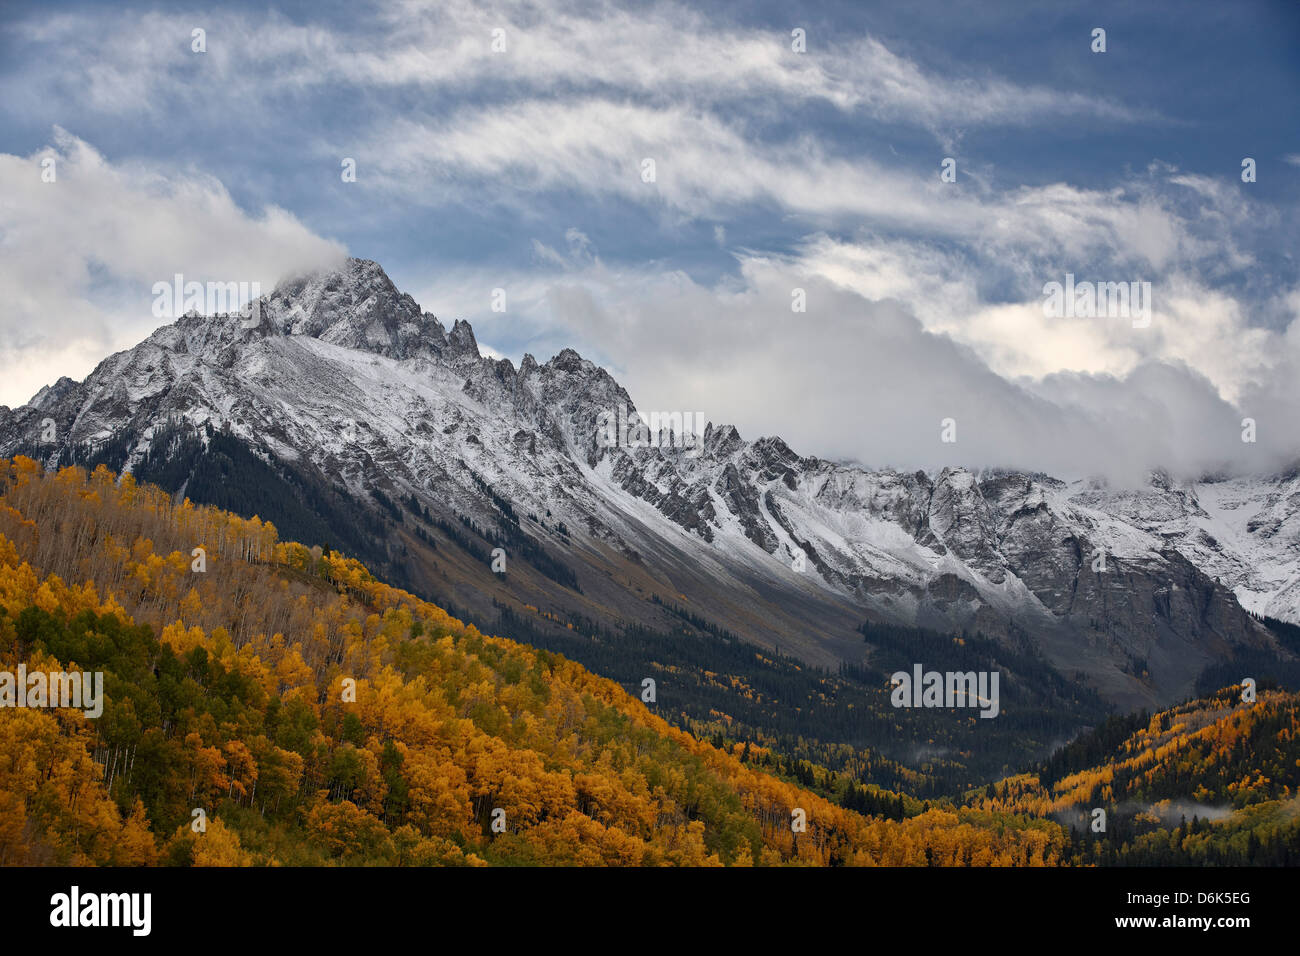 Mount Sneffels with a dusting of snow in the fall, Uncompahgre National Forest, Colorado, United States of America - Stock Image